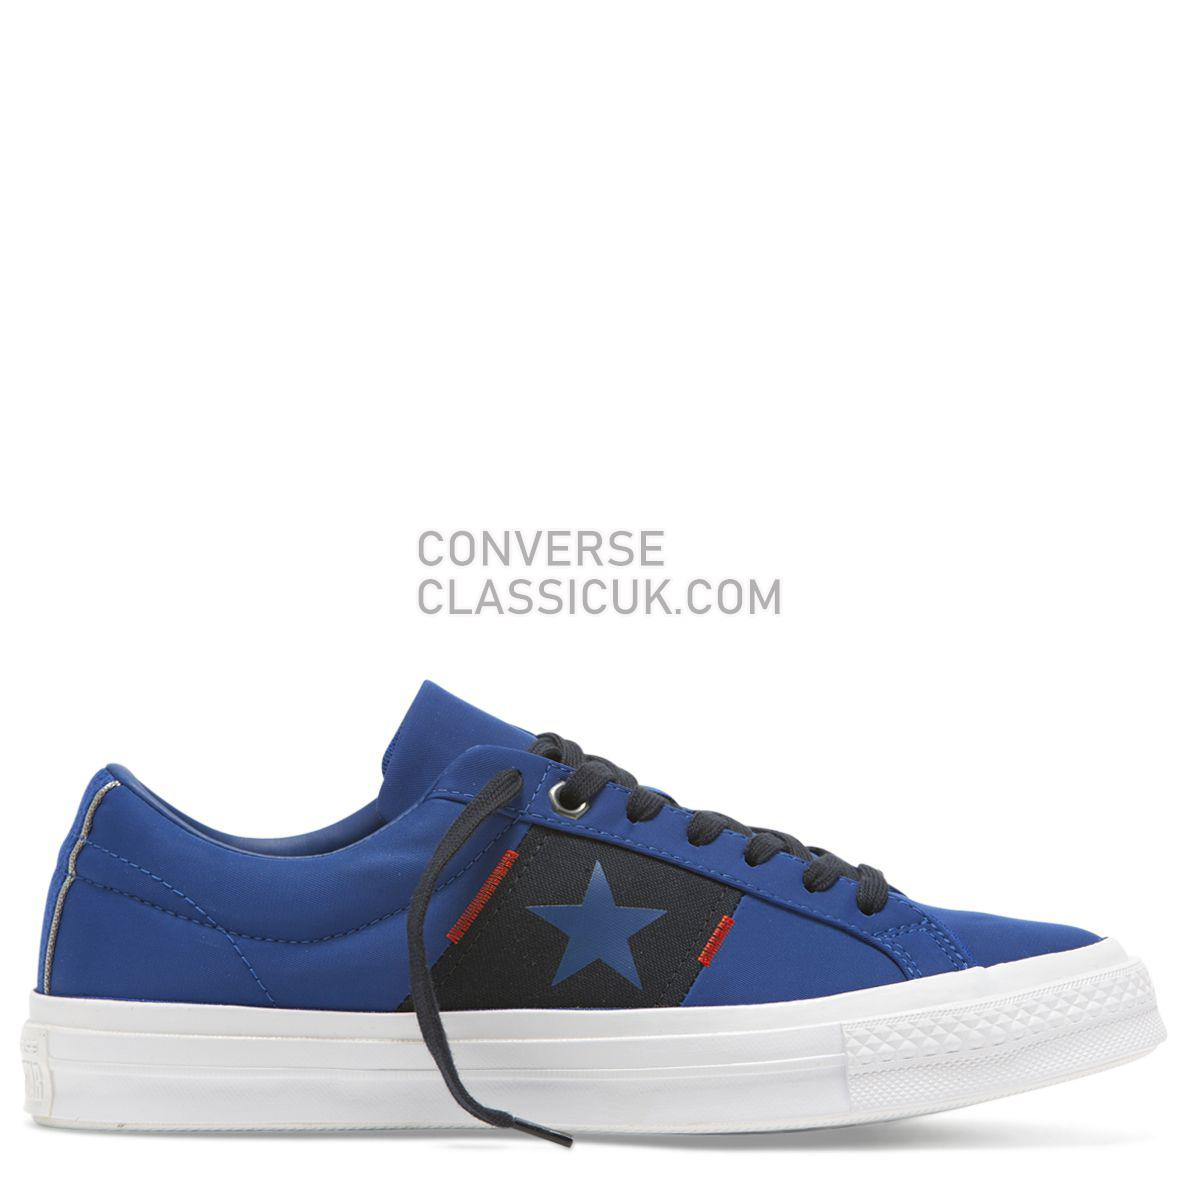 Converse One Star Flight School Low Top Blue Mens Womens Unisex 165057 Blue/Dark Obsidian/White Shoes